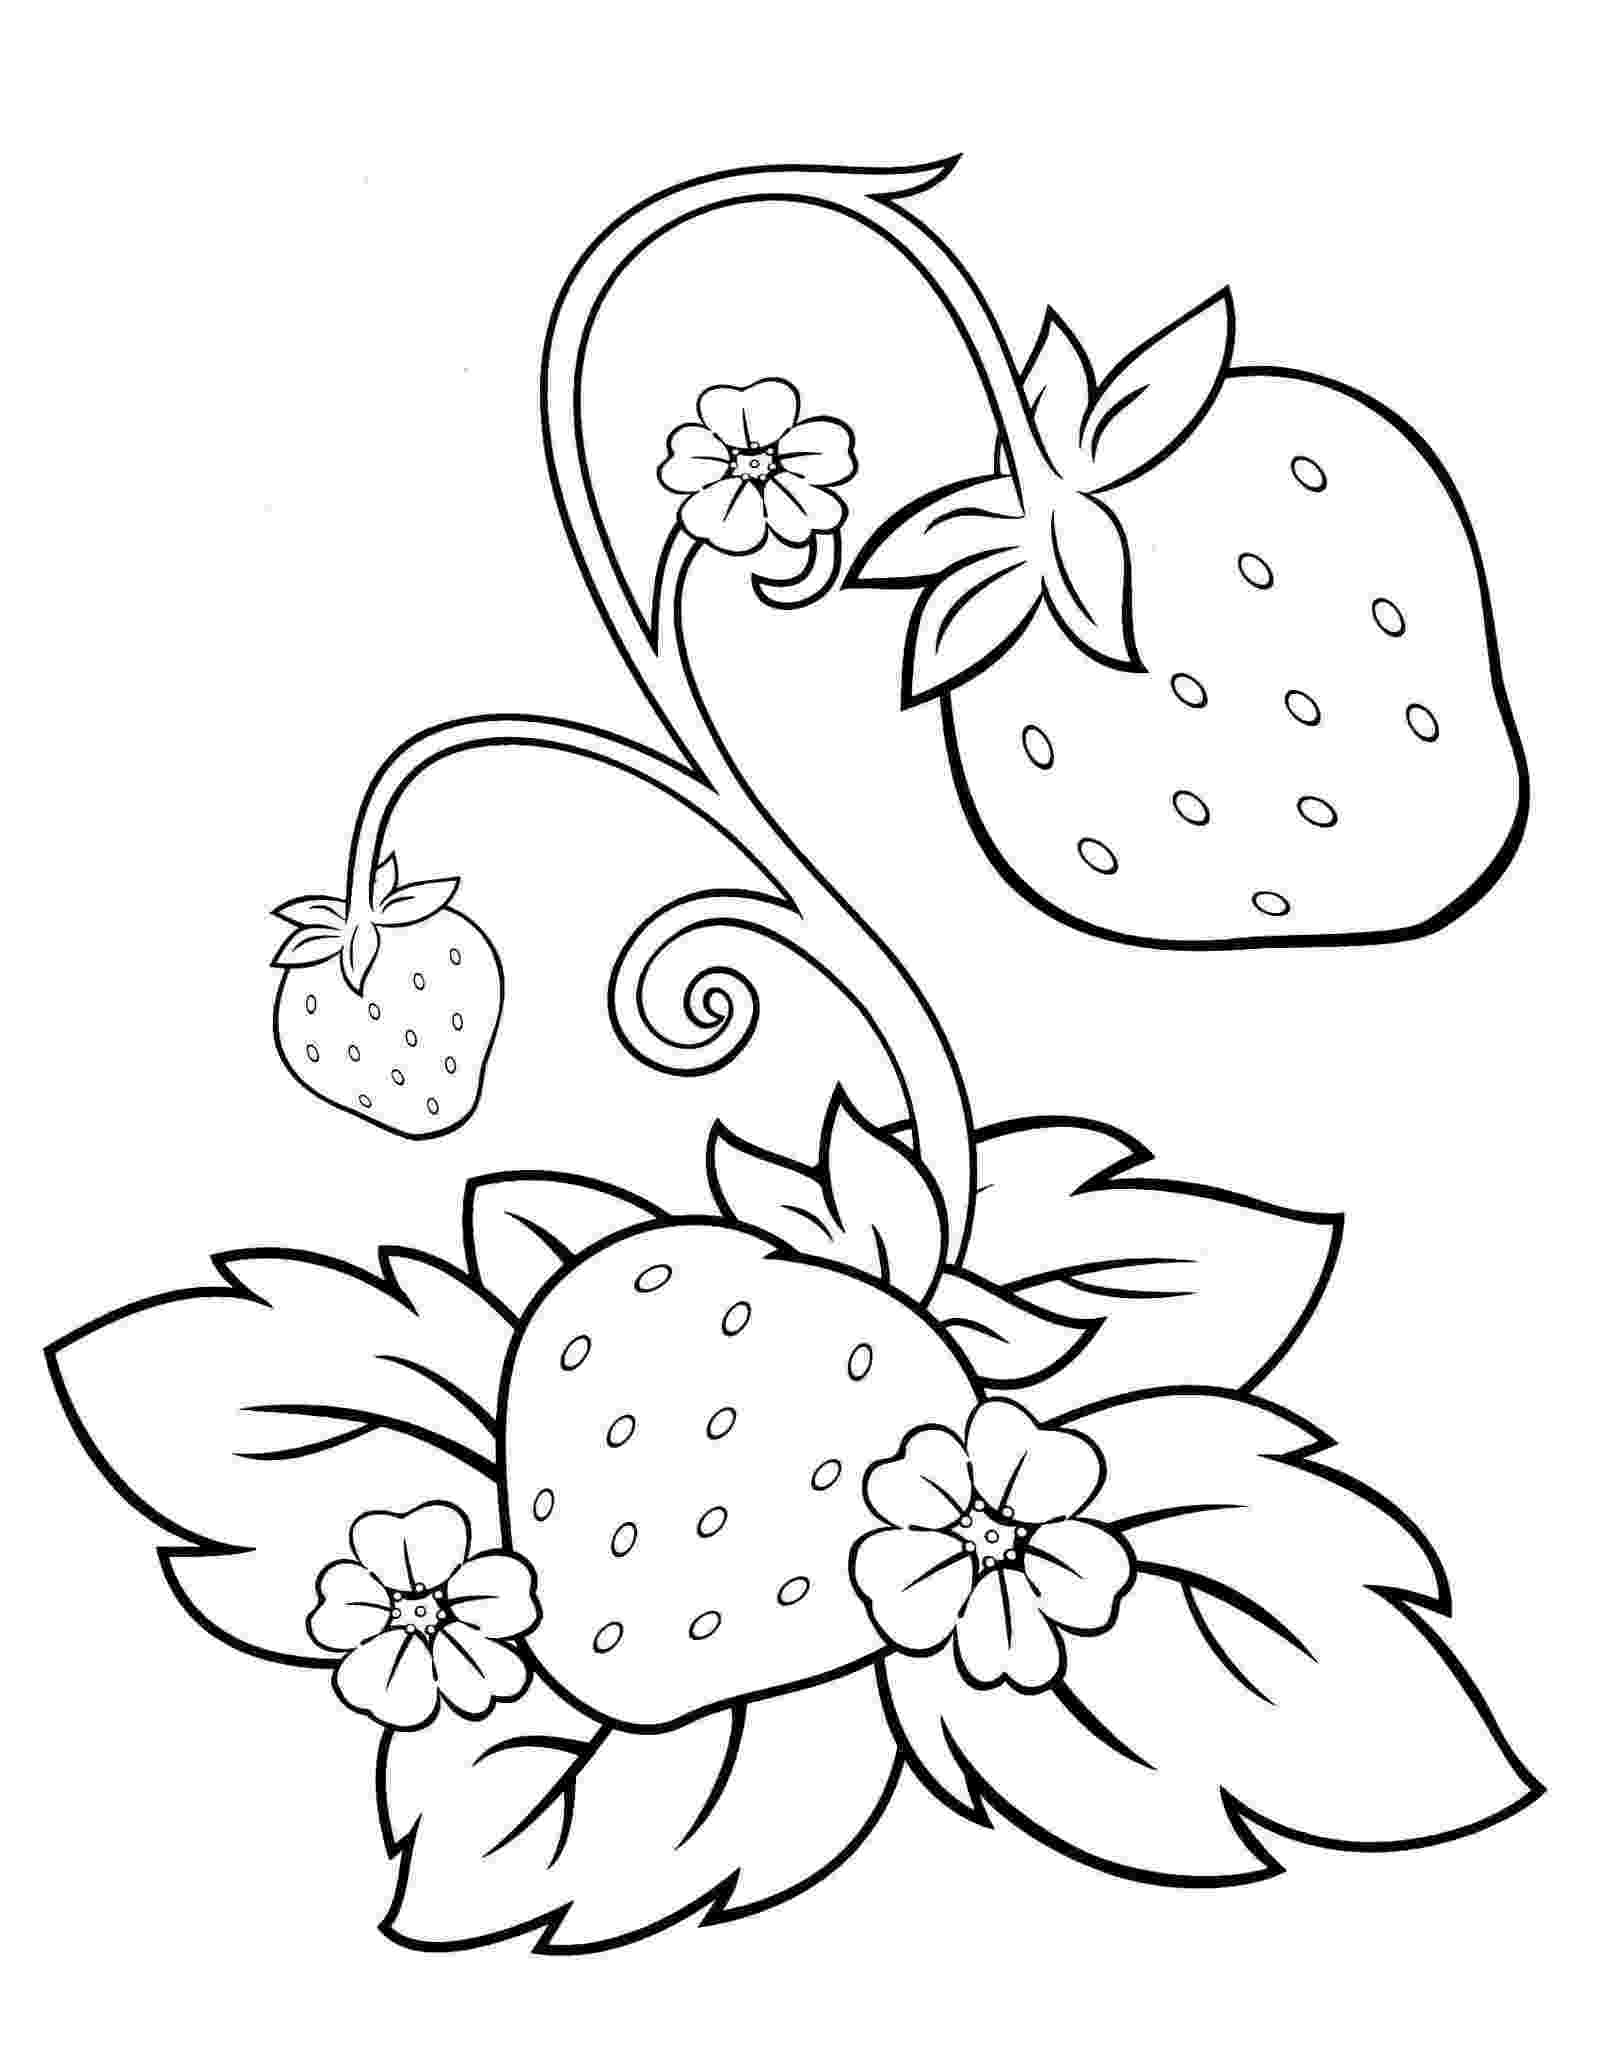 strawberry picture for coloring strawberry coloring and activity page coloring strawberry for picture